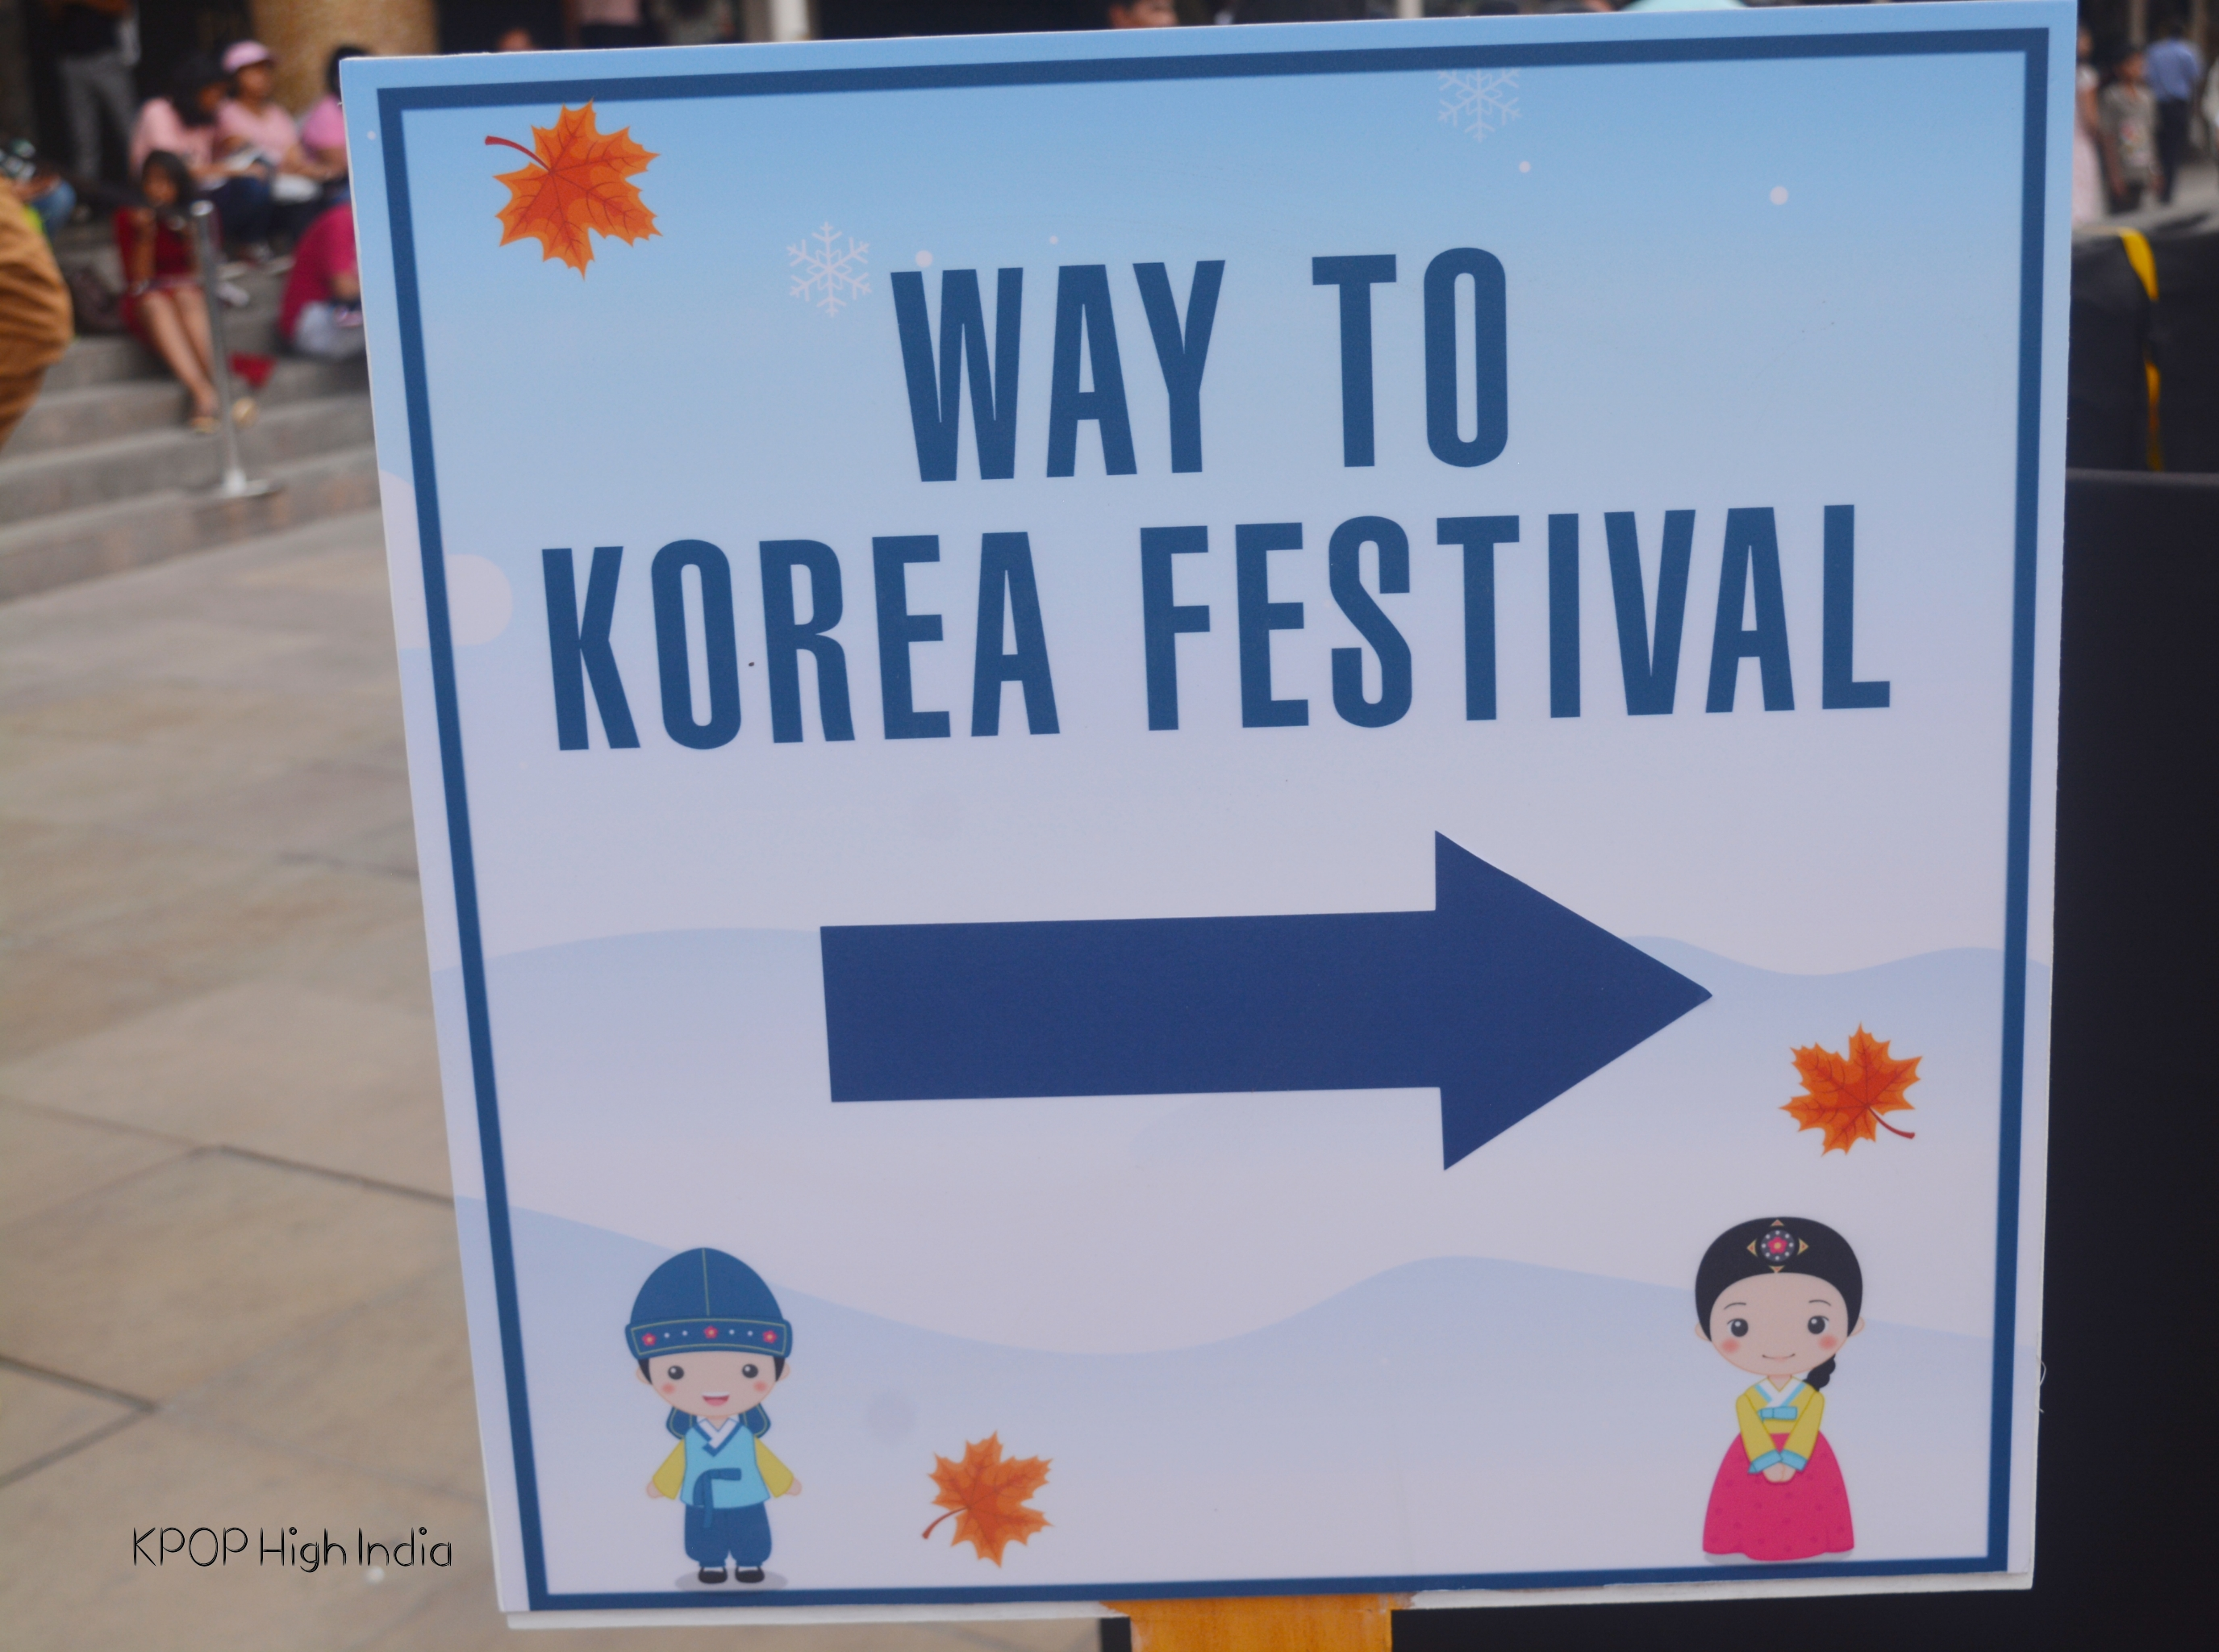 Korea Festival 2019 [Mumbai] + Exclusive Pictures! - KPOP High India